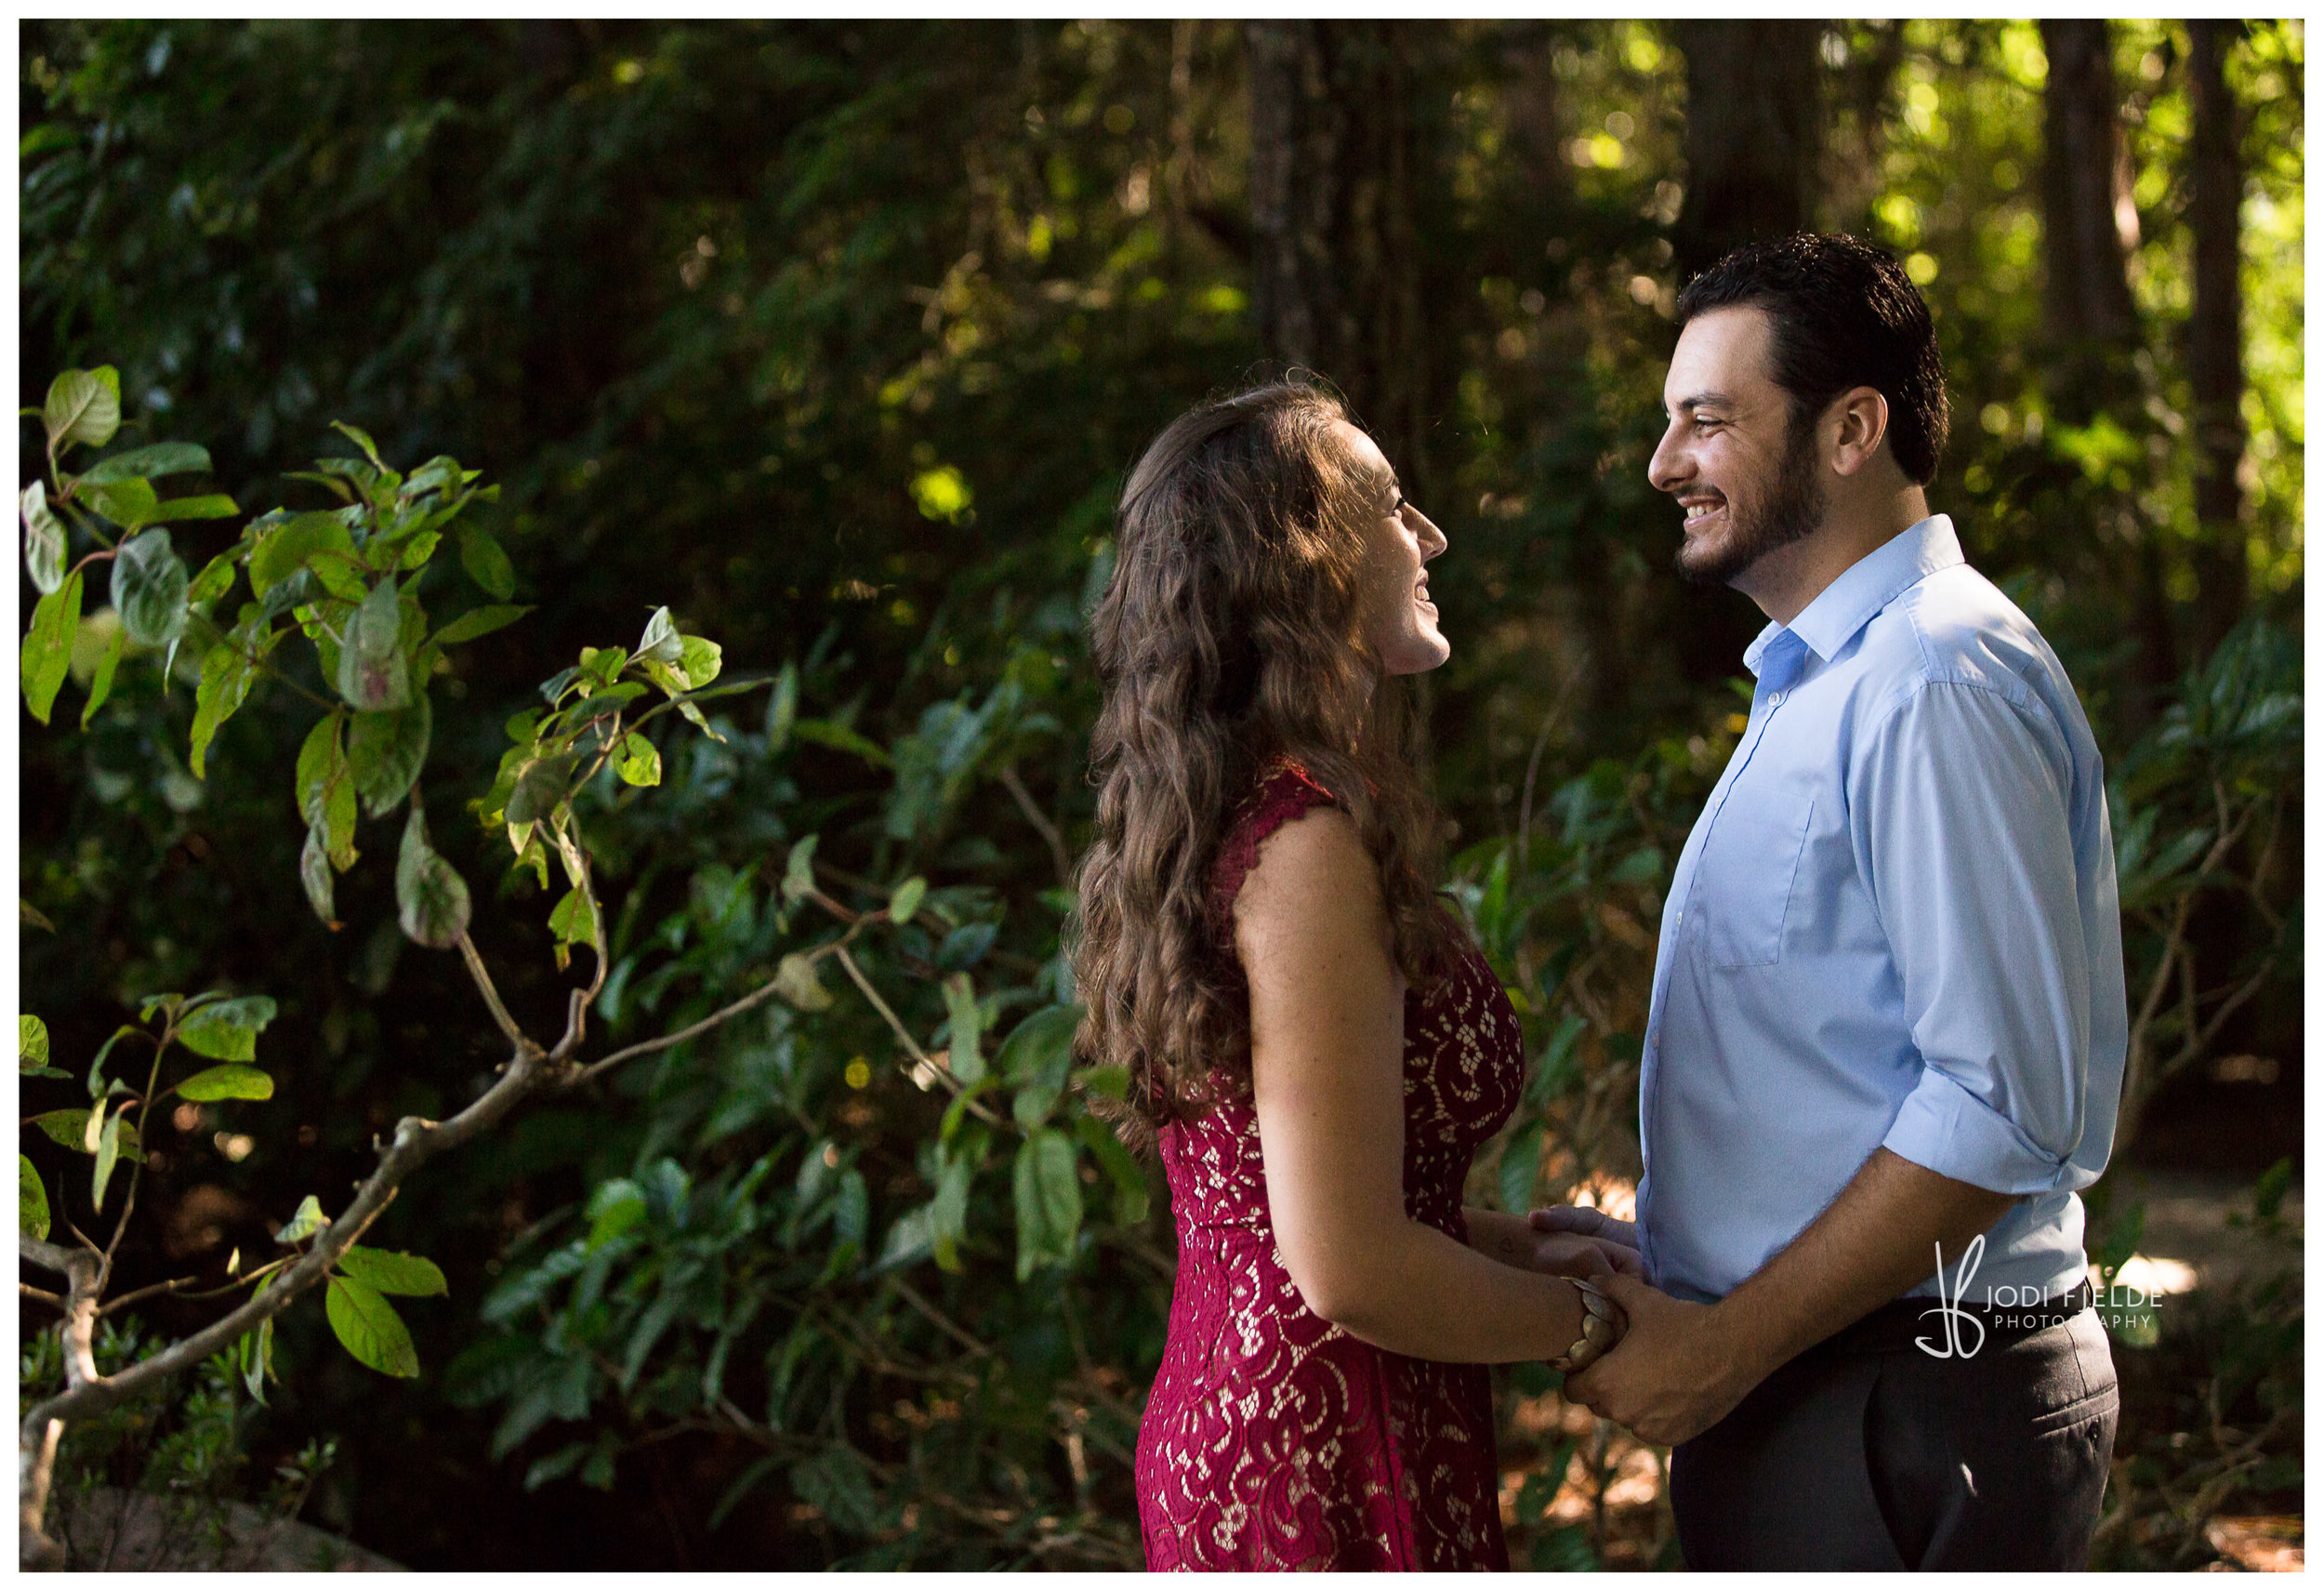 Morikami_Museum_Gardens_Delray_Beach_Engagement_Heather_and Doug_11.jpg